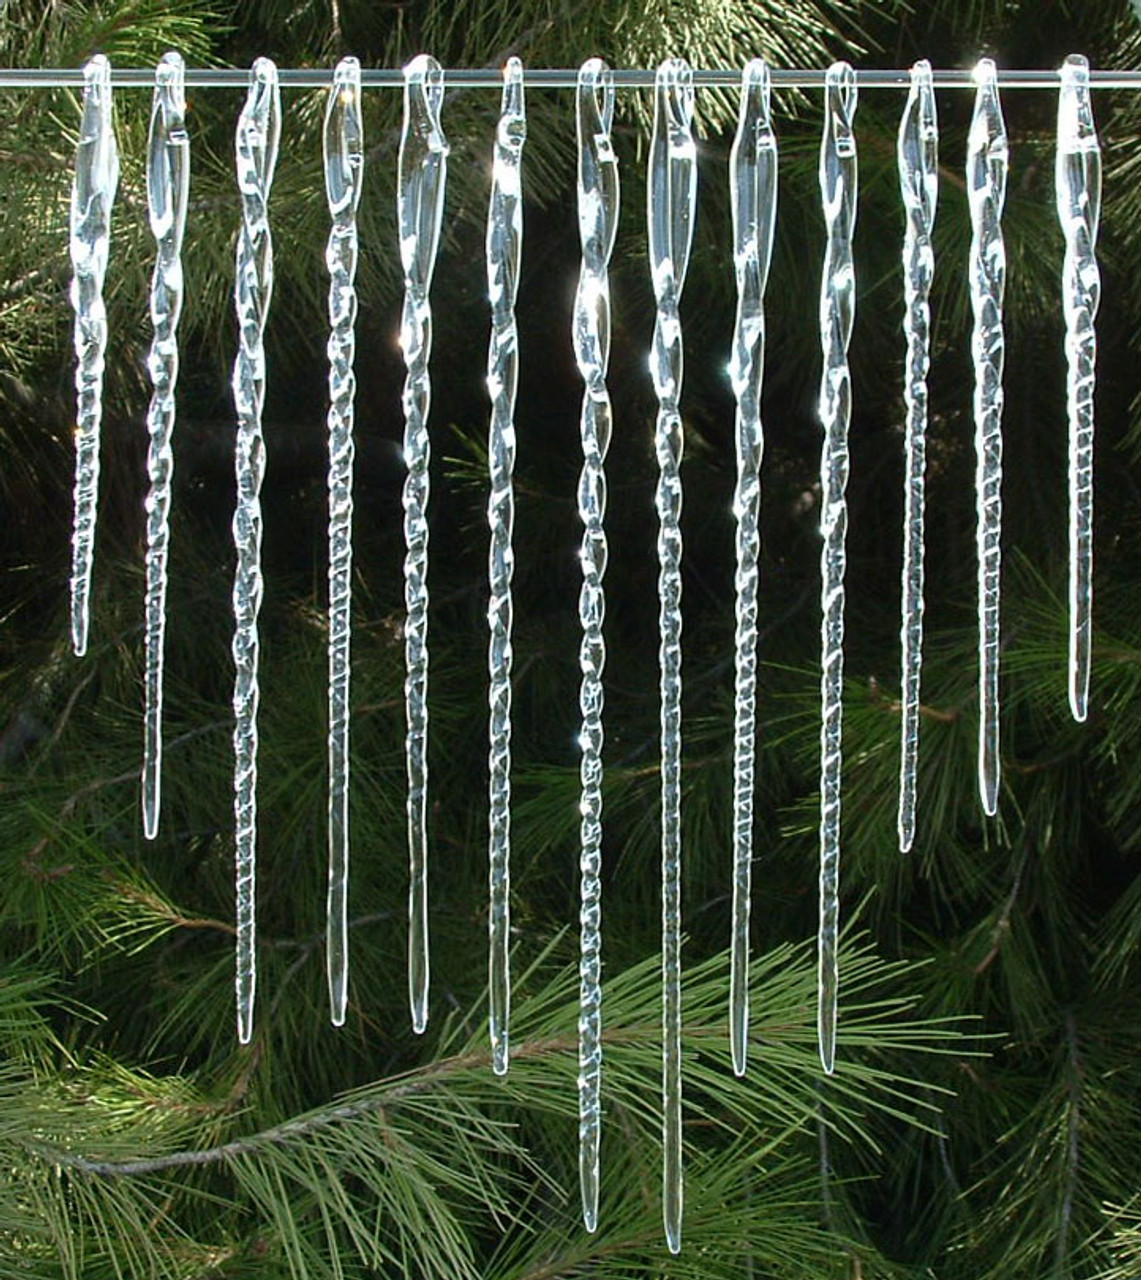 Hand Blown Glass Icicle Christmas Ornaments - Hand Blown Glass Icicle Christmas Ornaments - Prochaska Gallery